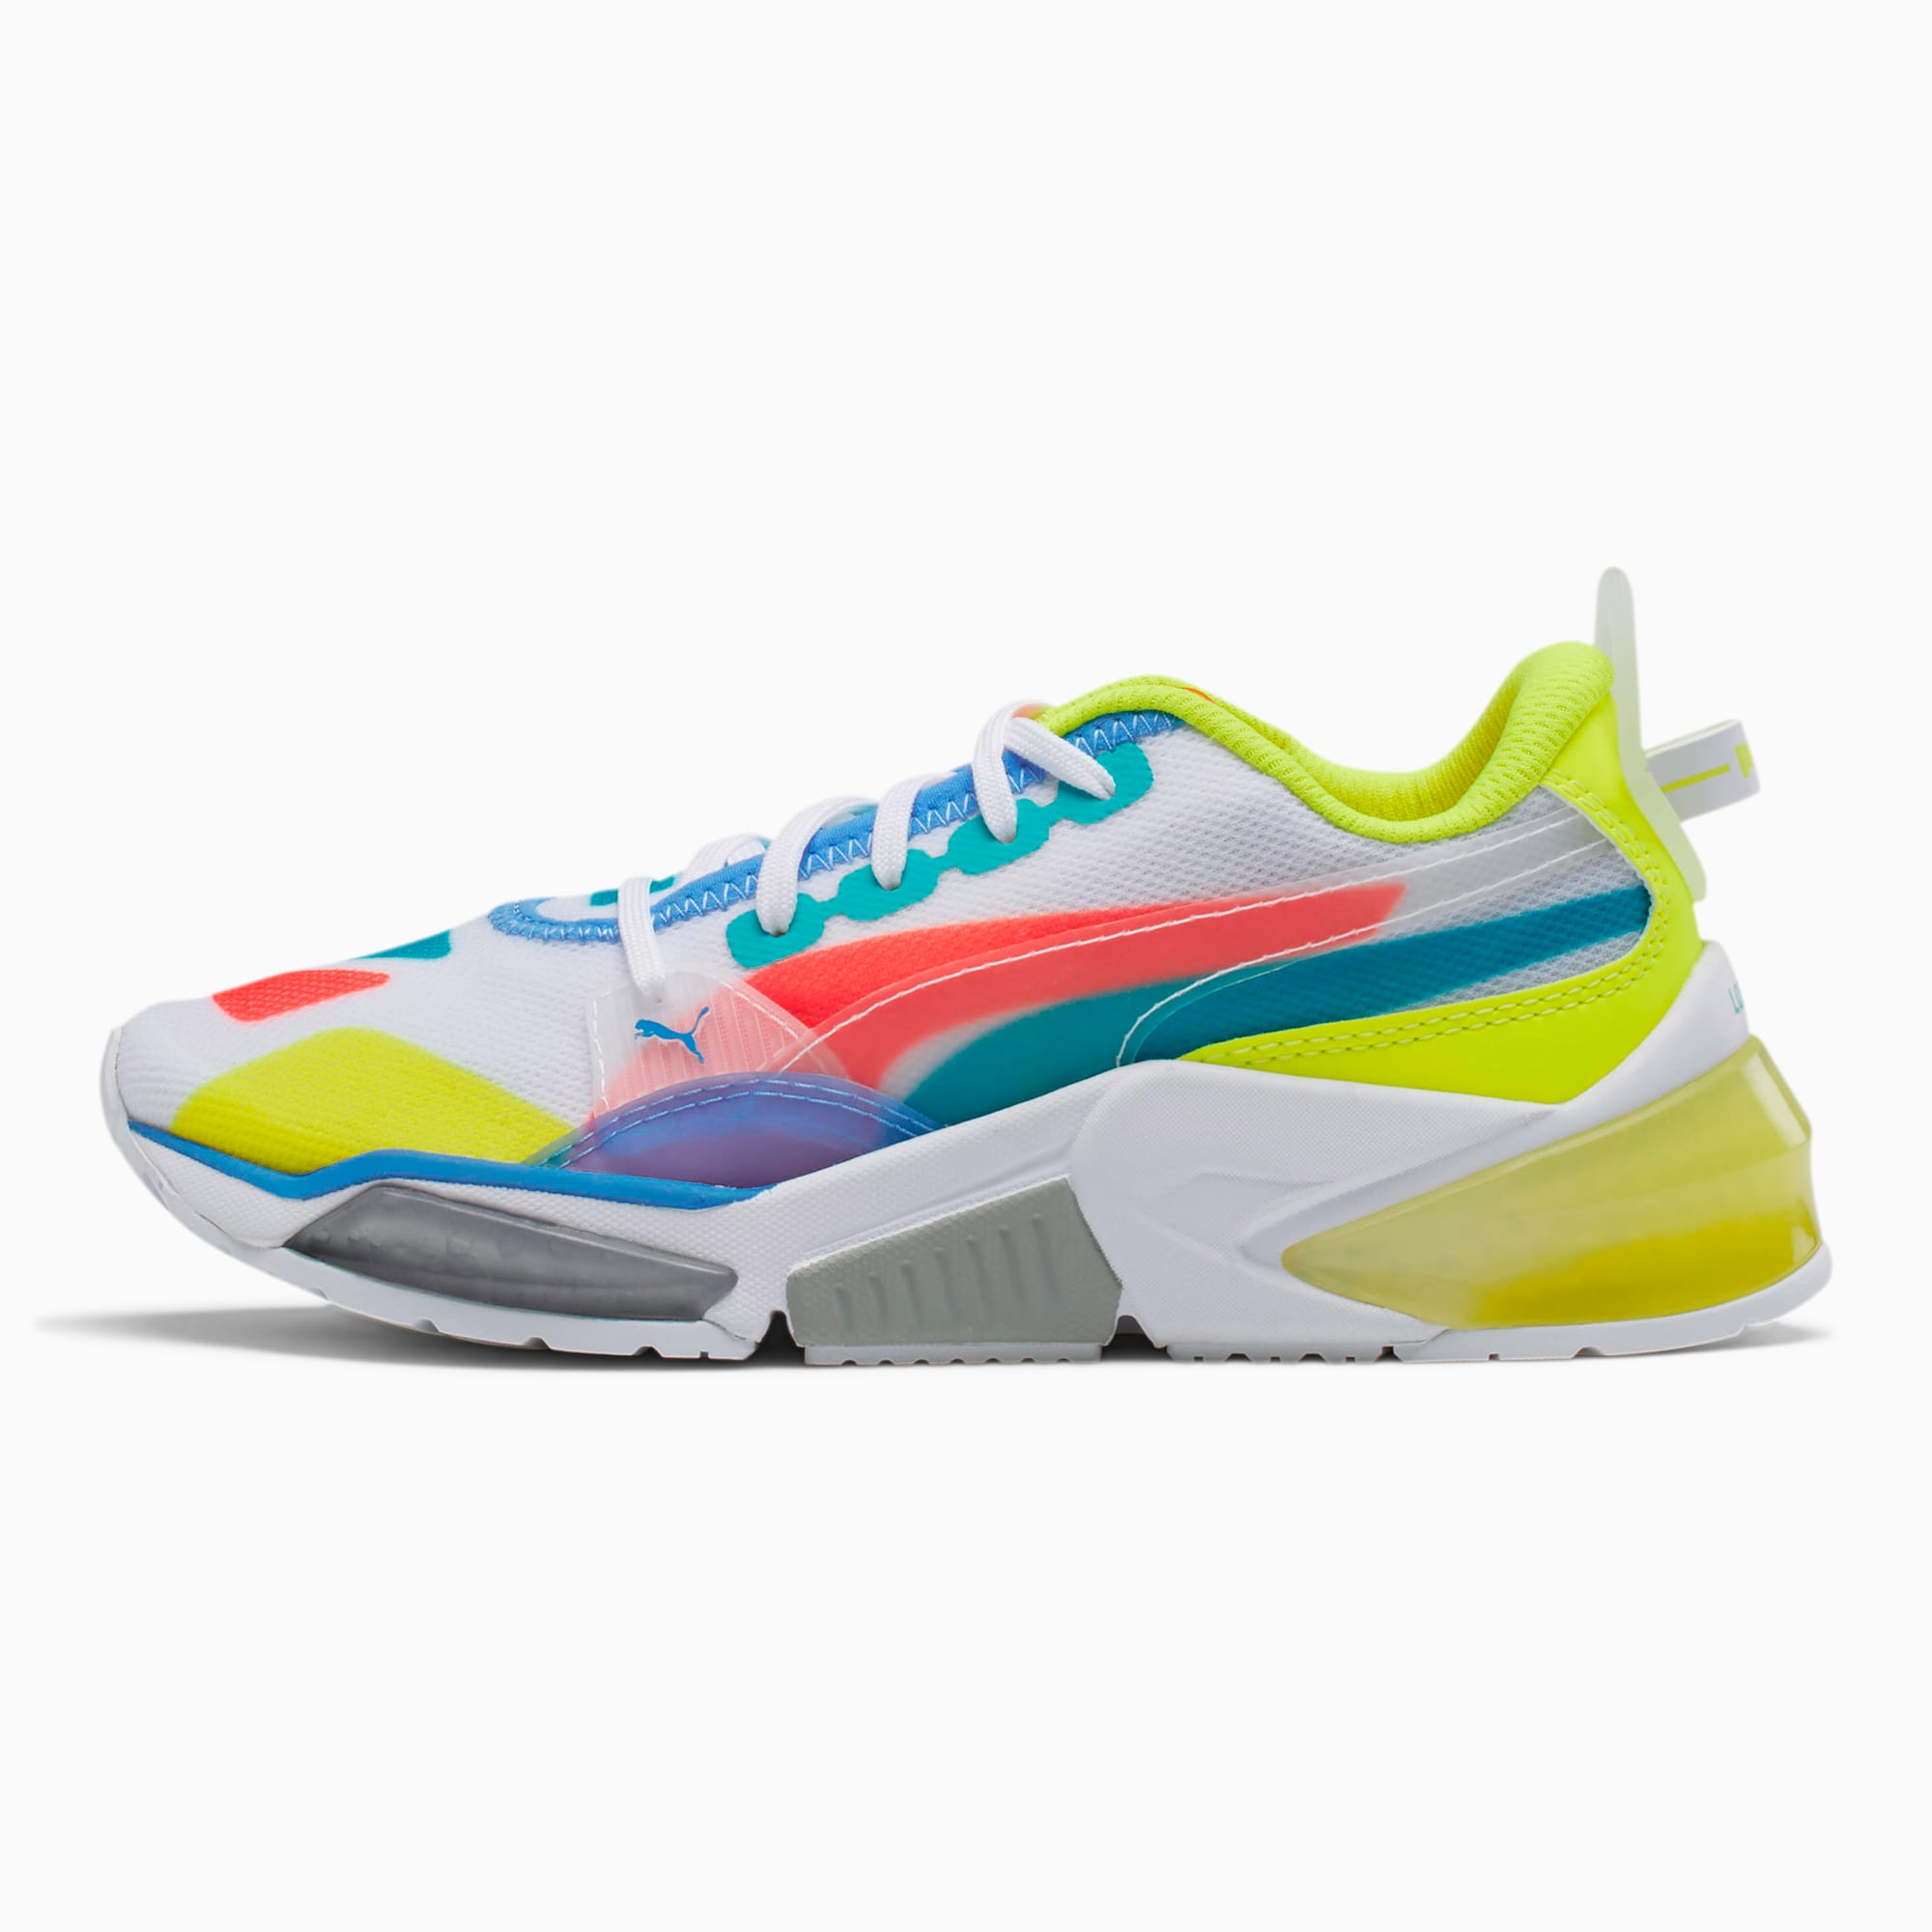 LQDCELL Optic Sheer Training Shoes JR